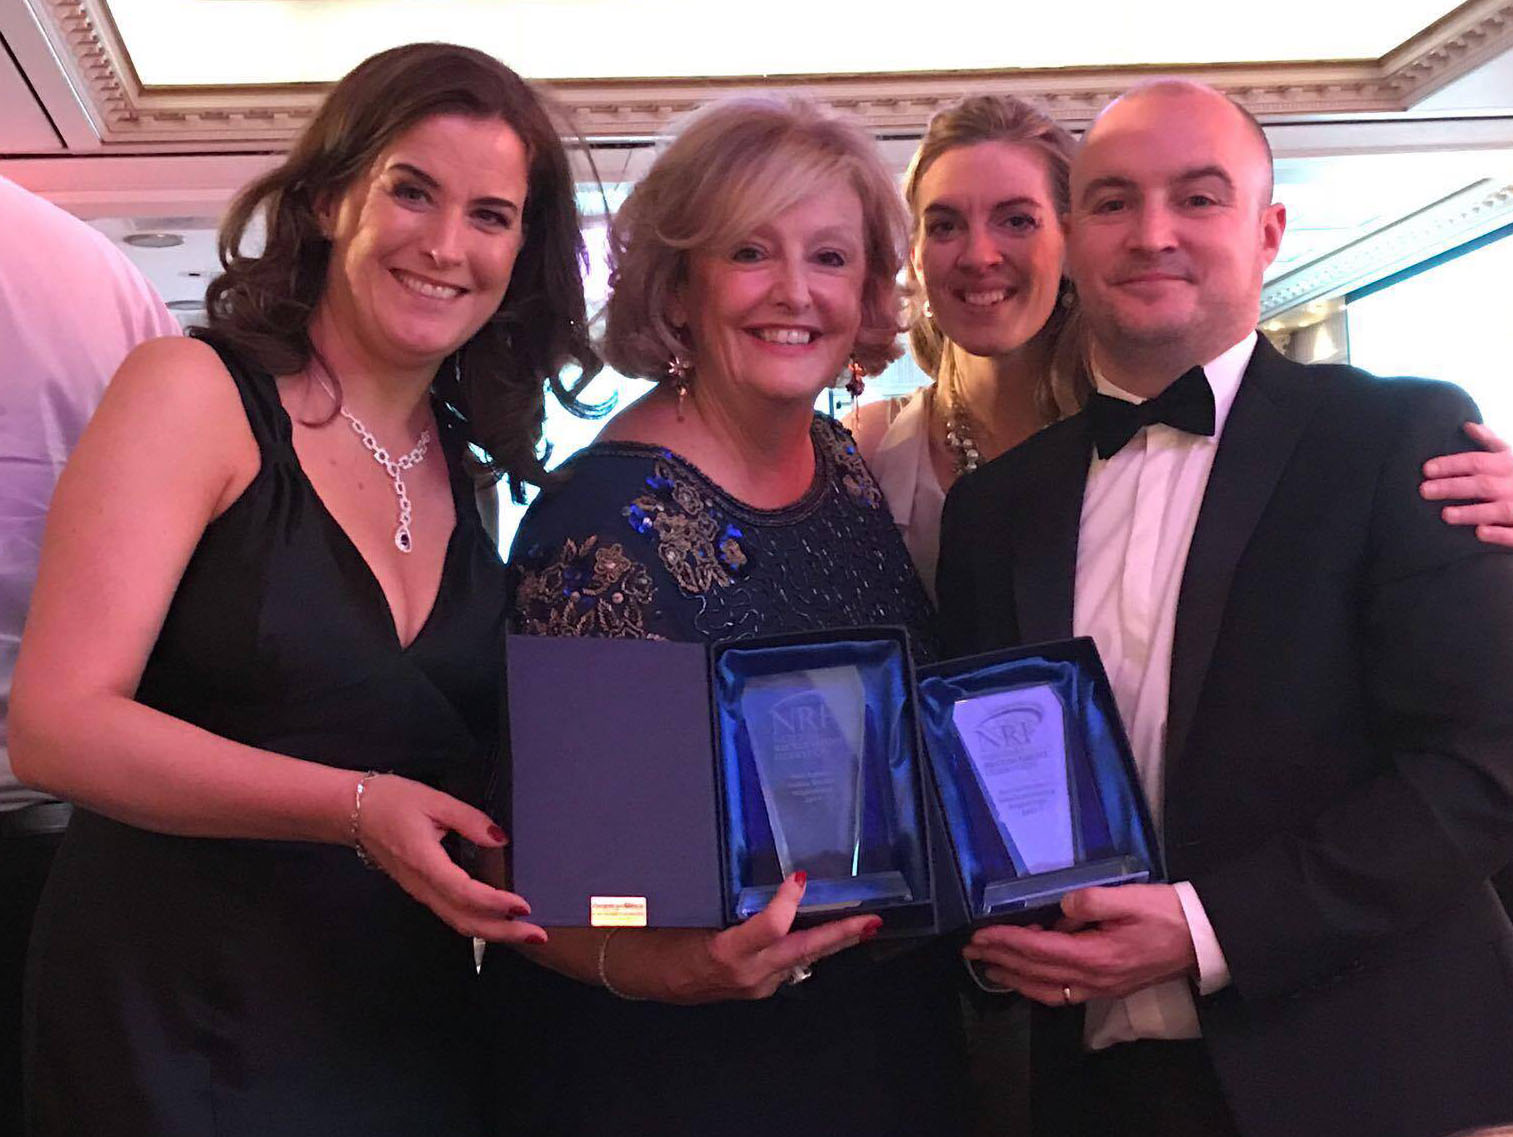 Eileen Moloney, Head of Marketing, Barbara McGrath, MD, Estelle David, Board Director, Mark Byrne, Commercial Director of Brightwater Recruitment at the NRF Awards